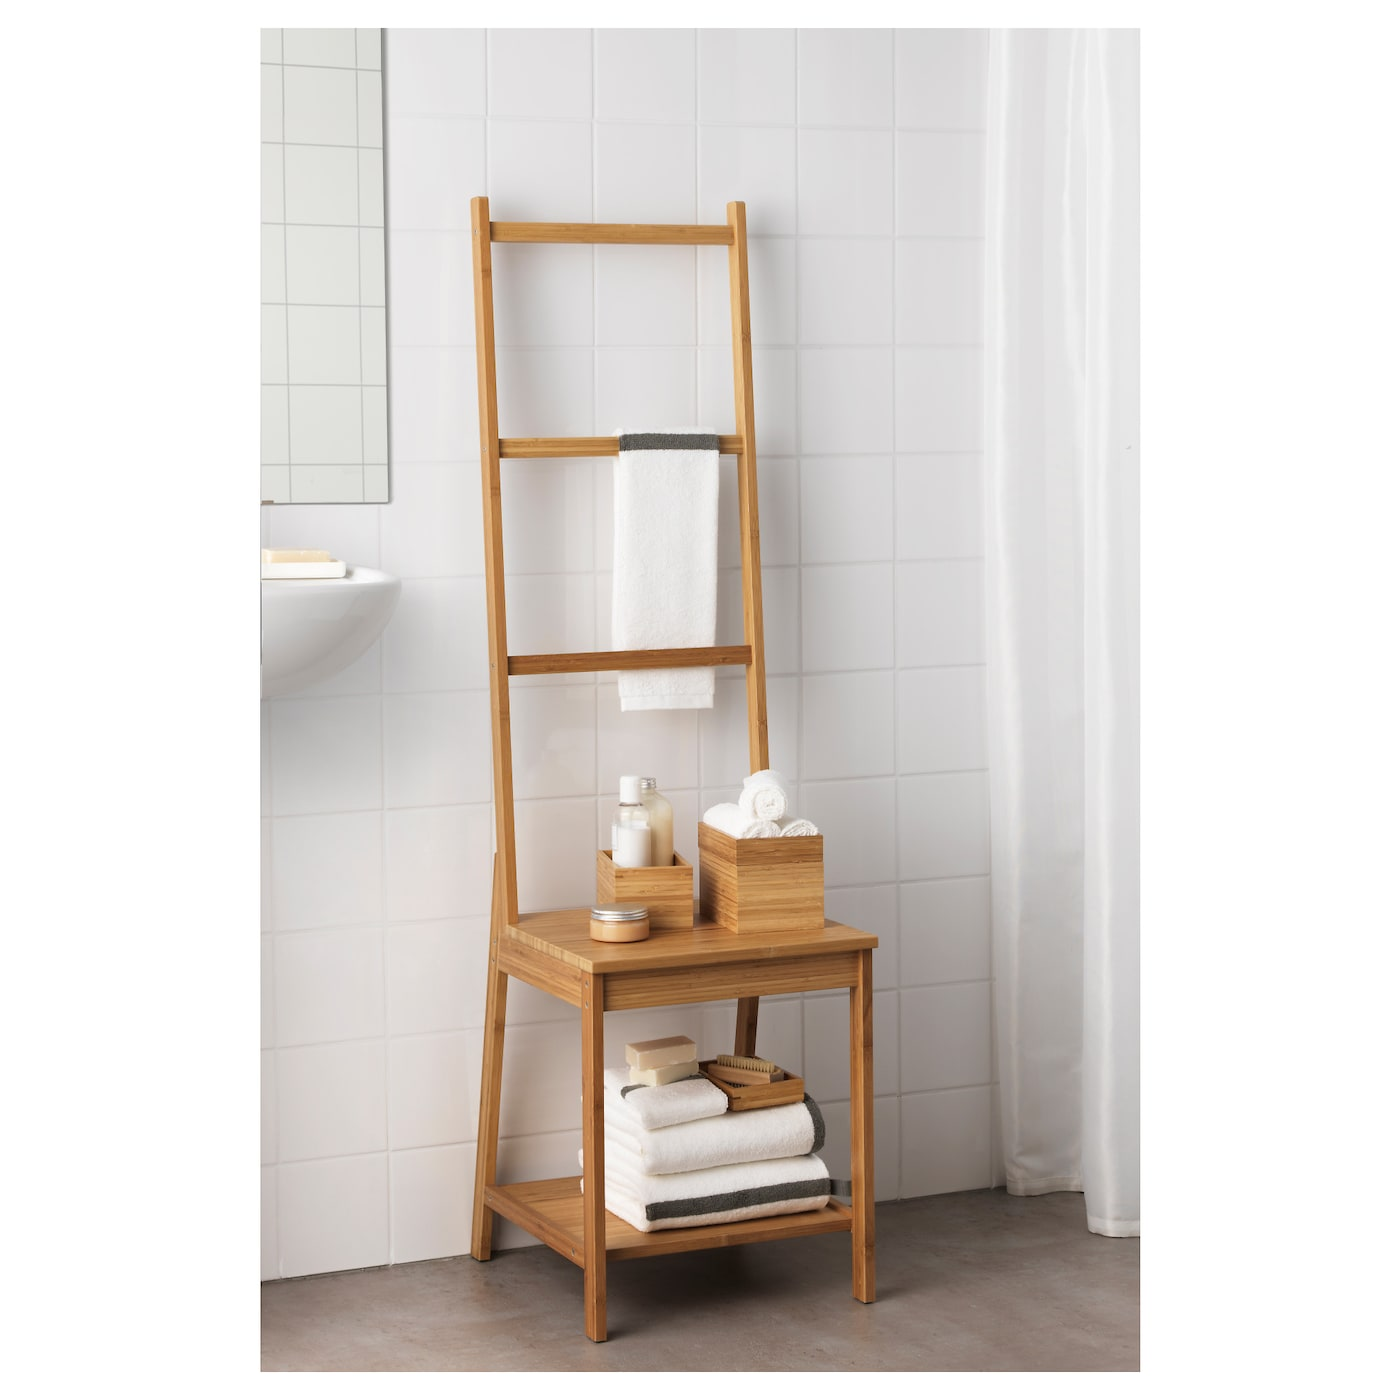 RÅGRUND Chair with towel rack - bamboo